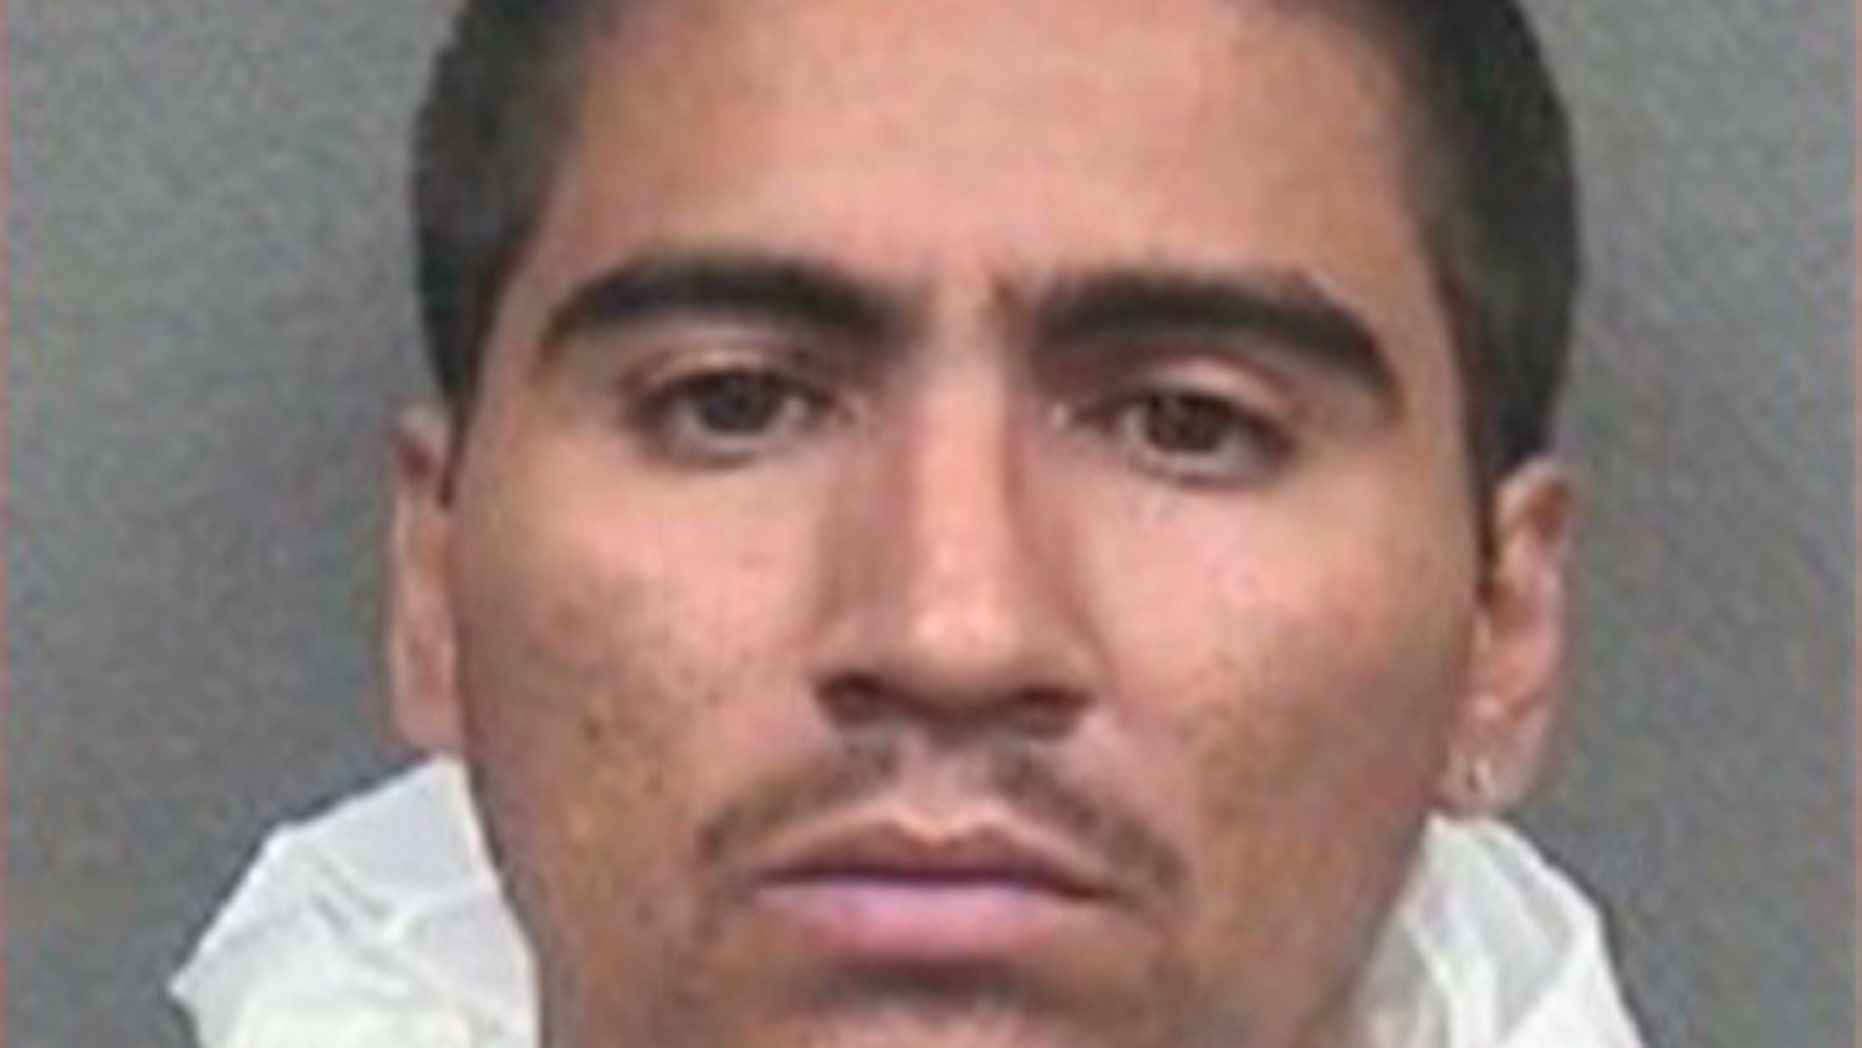 Noe Morin, 32, was arrested after police found a dismembered body outside a vacant house